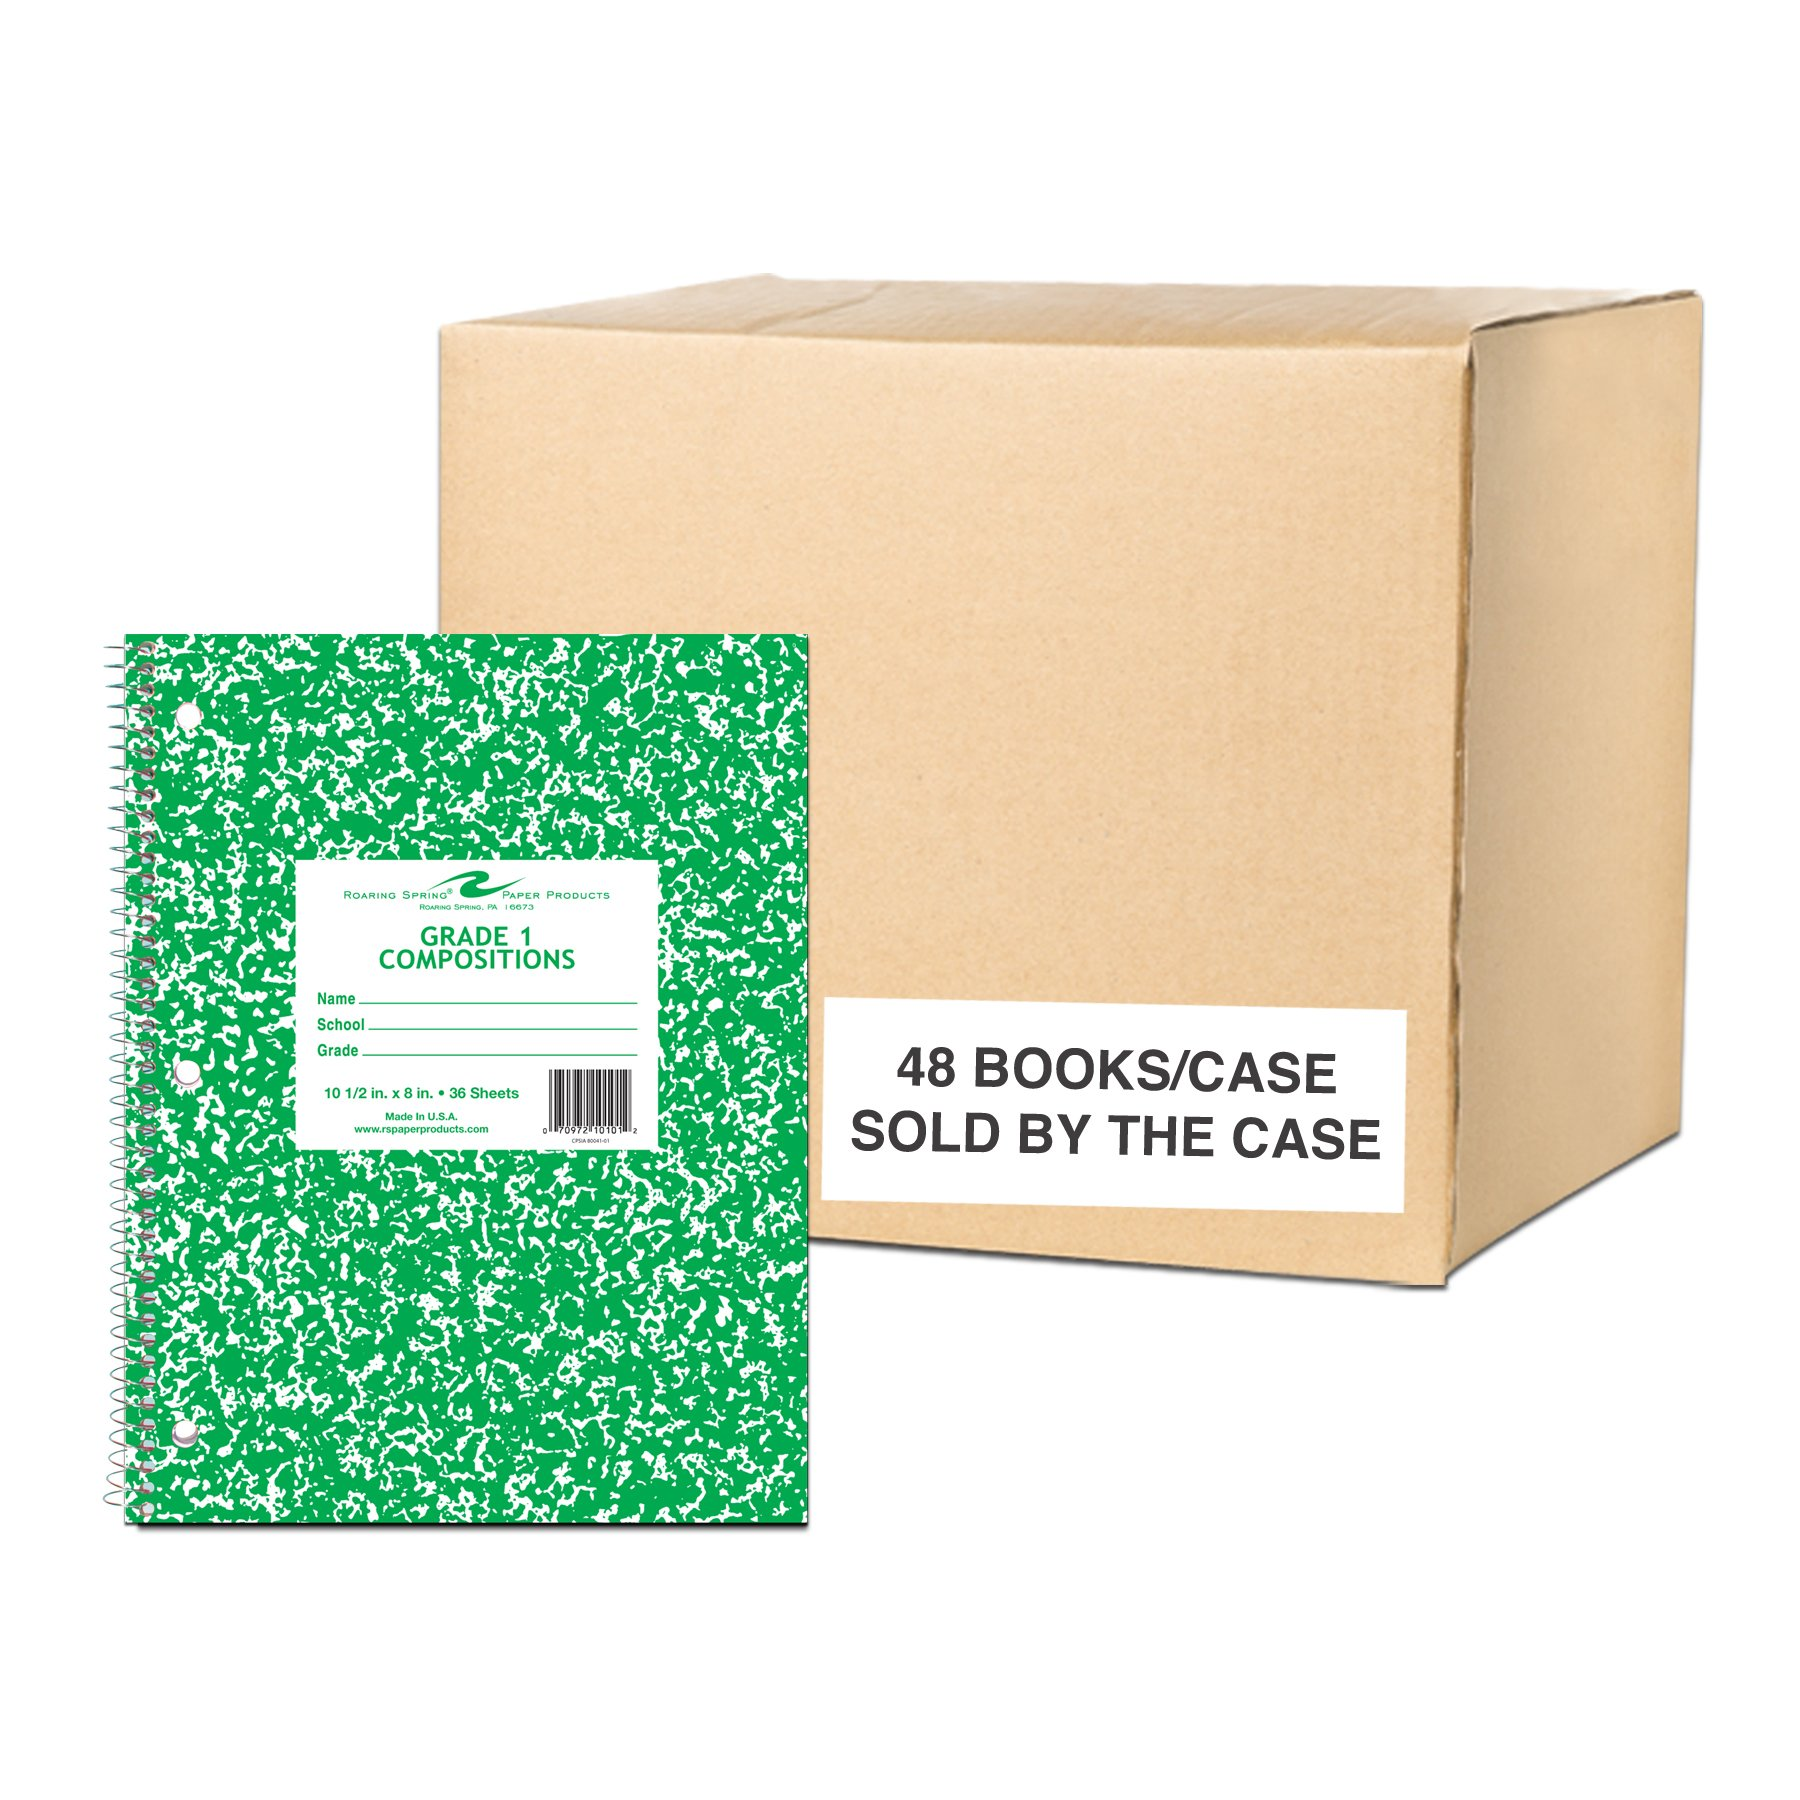 Roaring Spring Paper, Products Case of 48 Grade One Wirebound School Notebooks, 10.5''x8'', 36 sheets/book 15# White tablet Paper, 3-Hole Punched